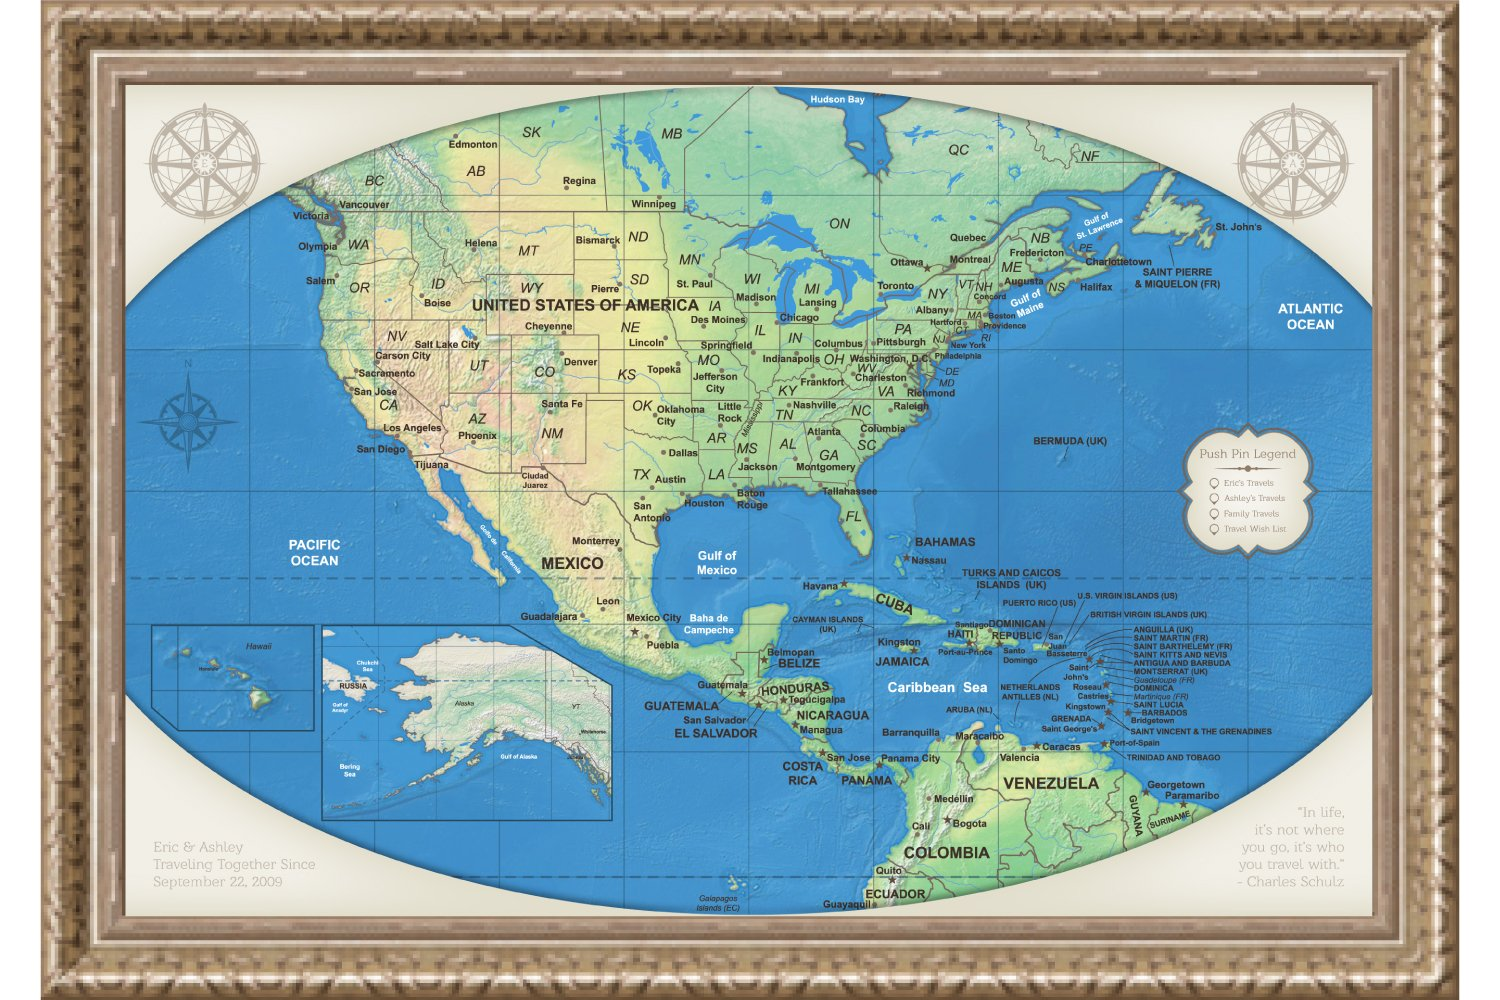 Amazon.com: US Map Wall Art Canvas - Personalized USA National Park ...